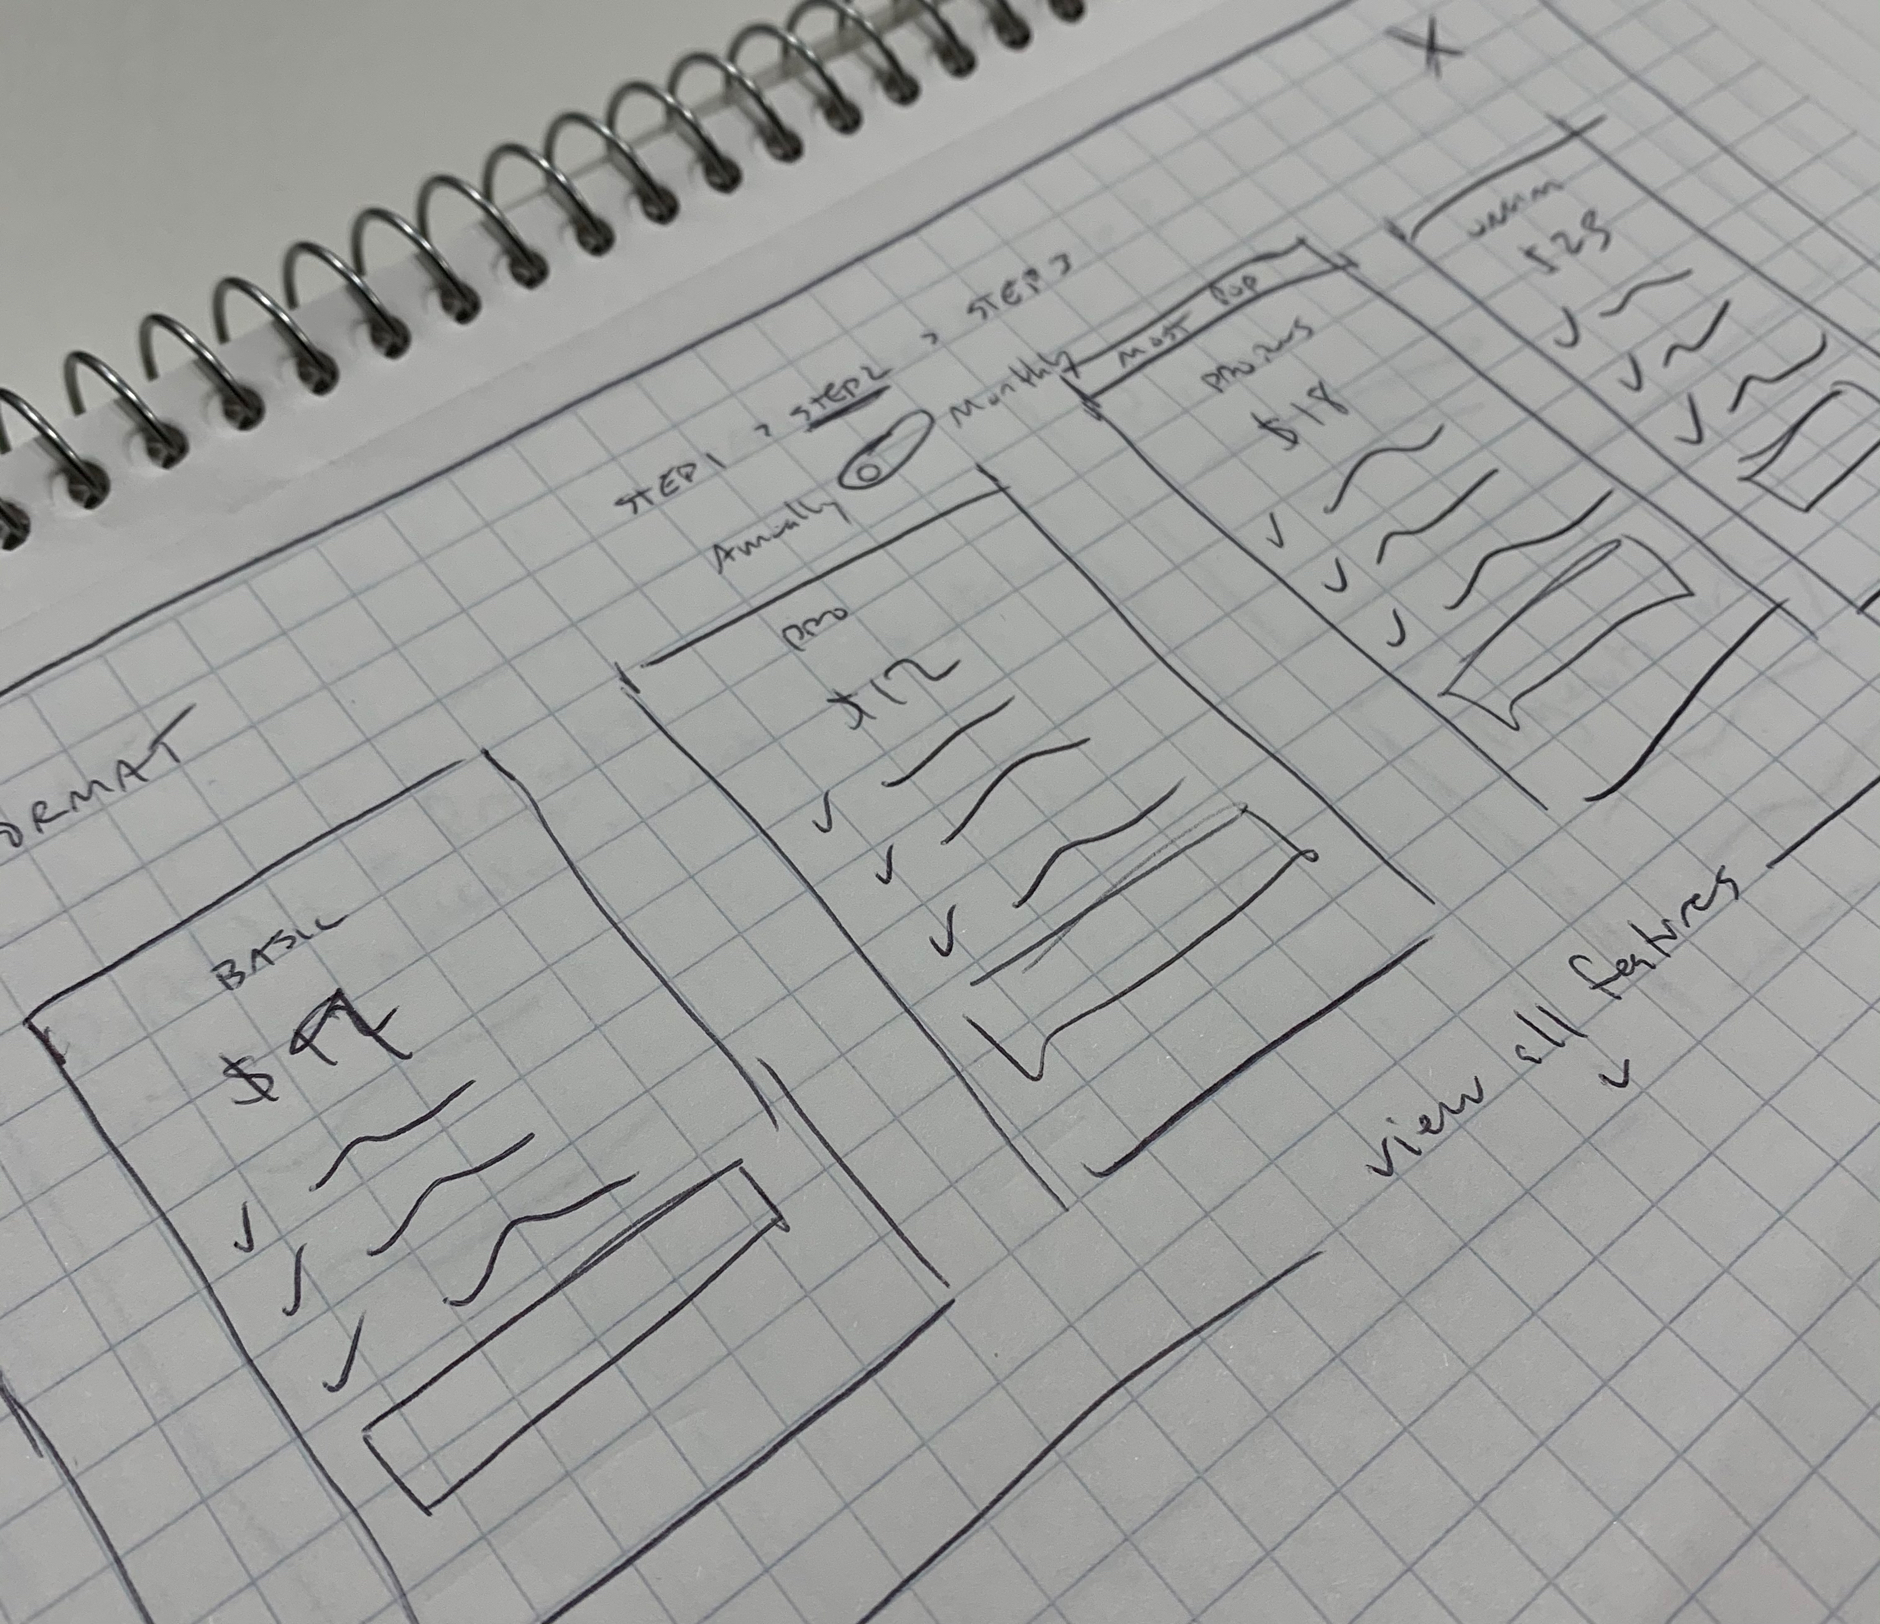 Sketch of plan selection